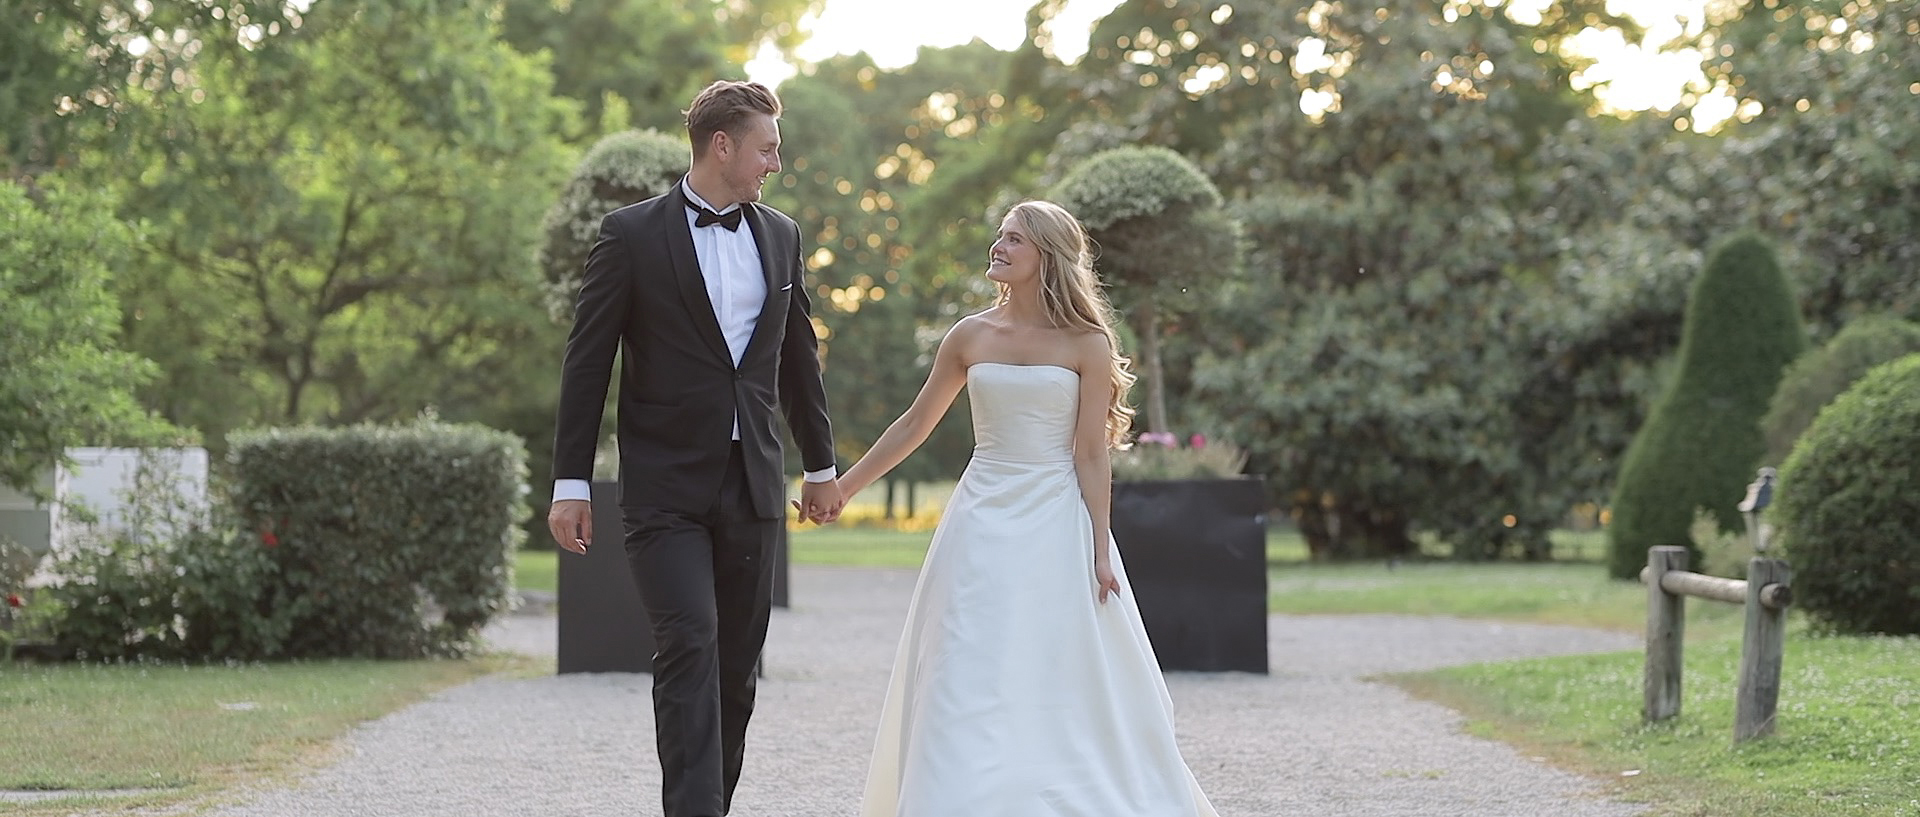 Parisian Wedding Film at the Ritz Paris